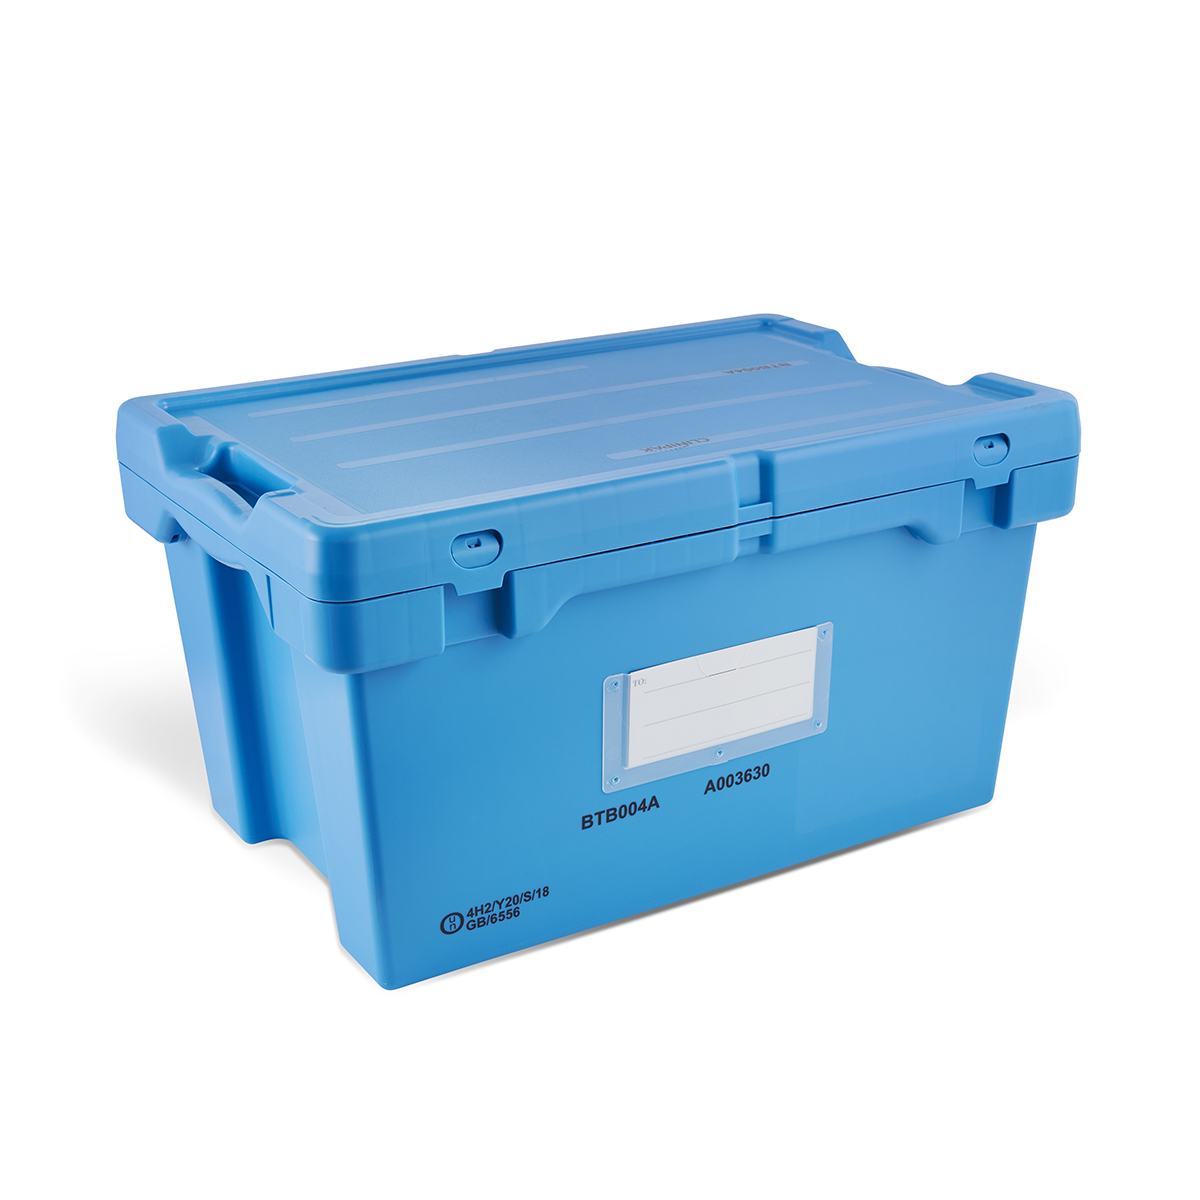 Blue Transportation Box Image